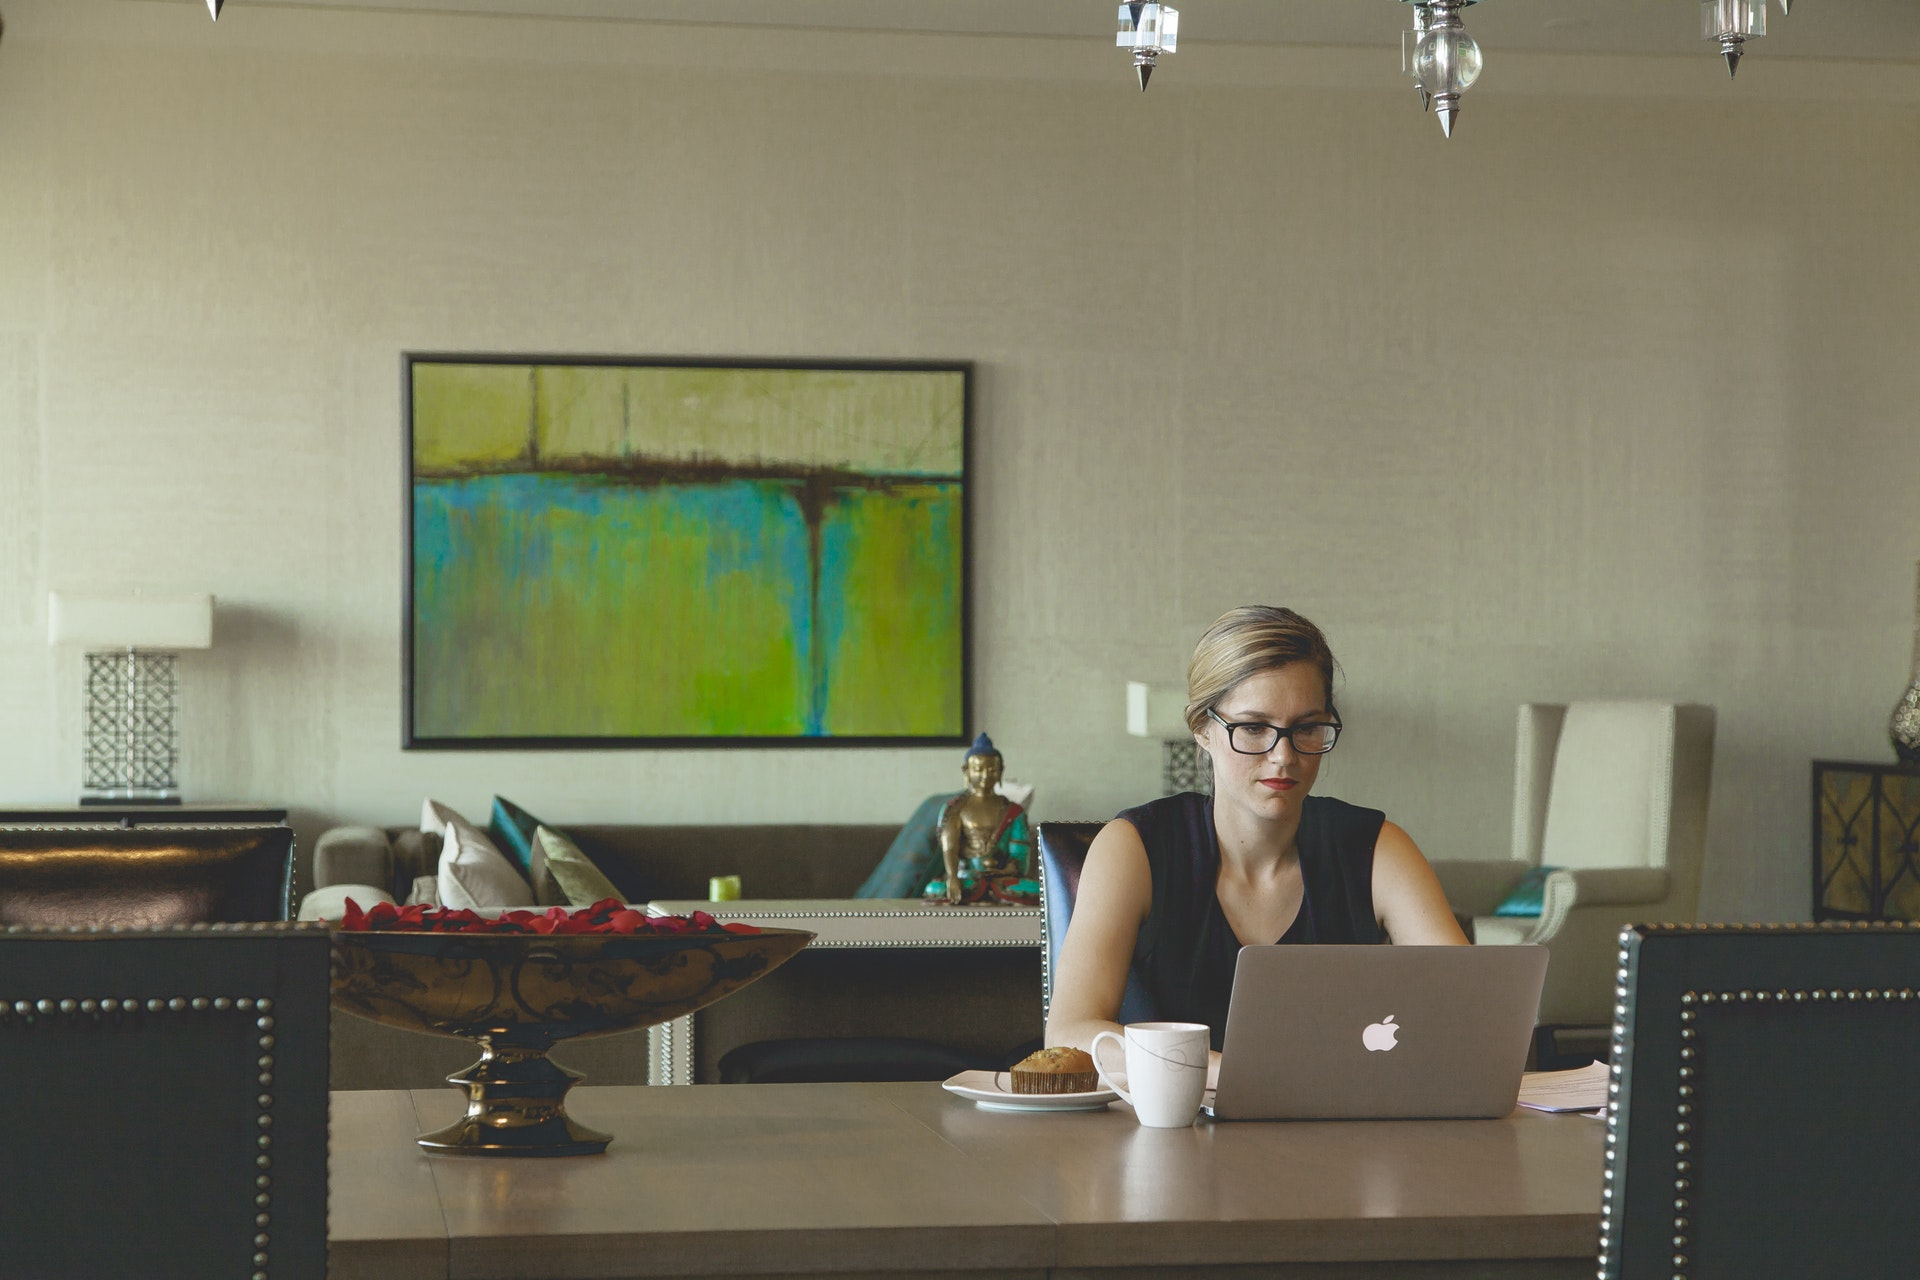 The Majority of Americans Believe Their Workspace Negatively Impacts Their Well-being. Here's How To Fix It.